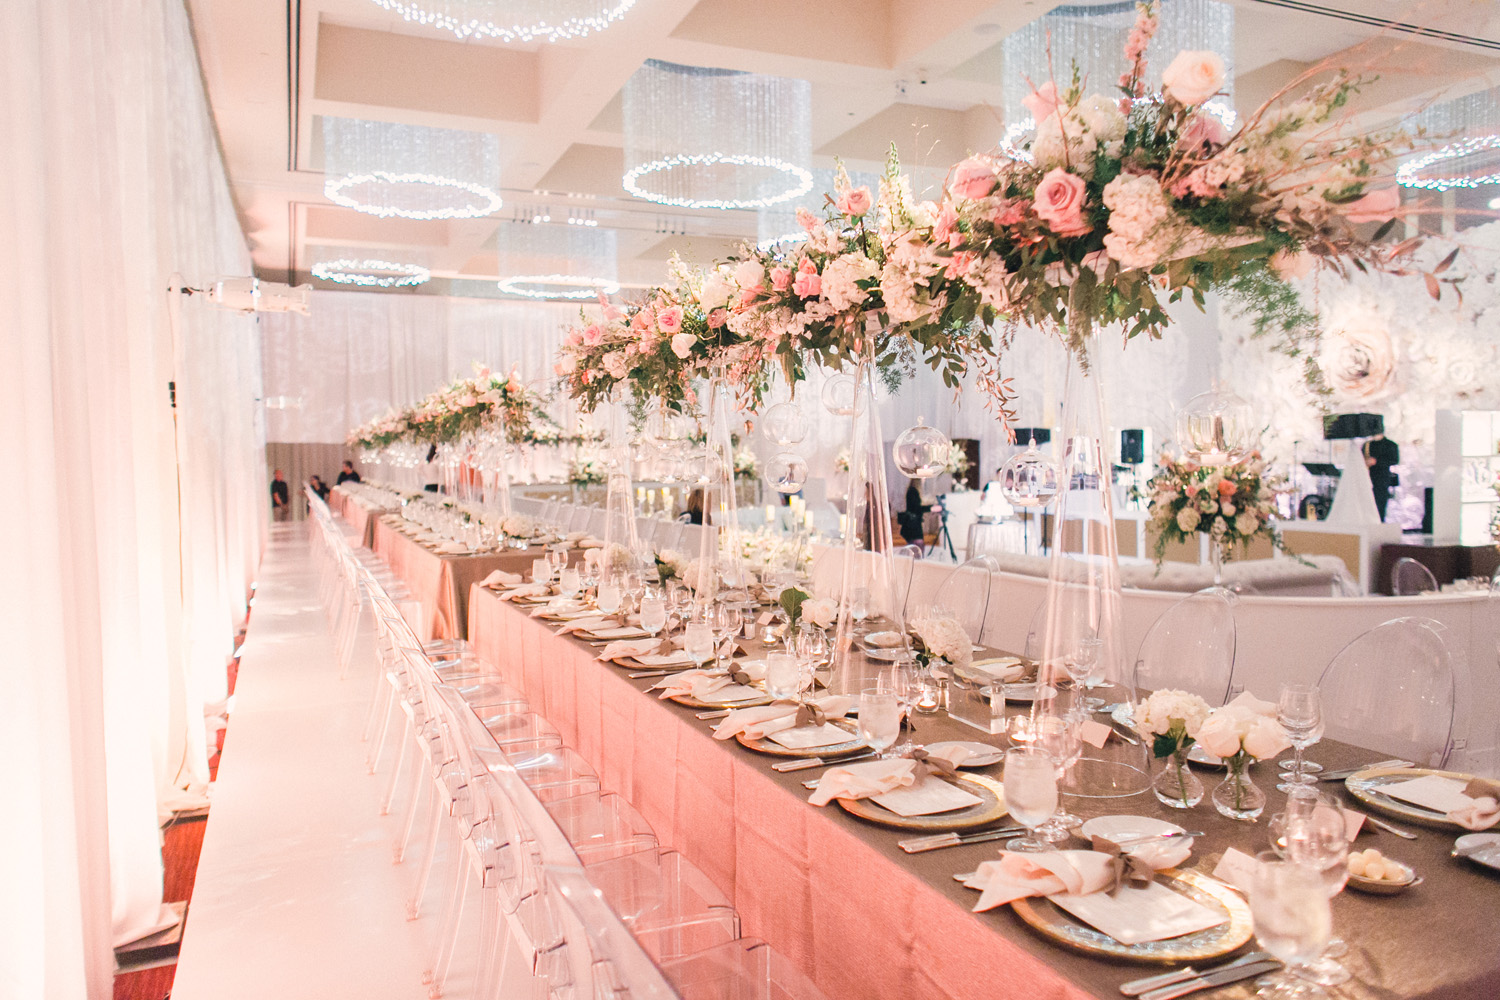 Pink wedding reception ballroom with glass globes hanging from centerpiece tea lights